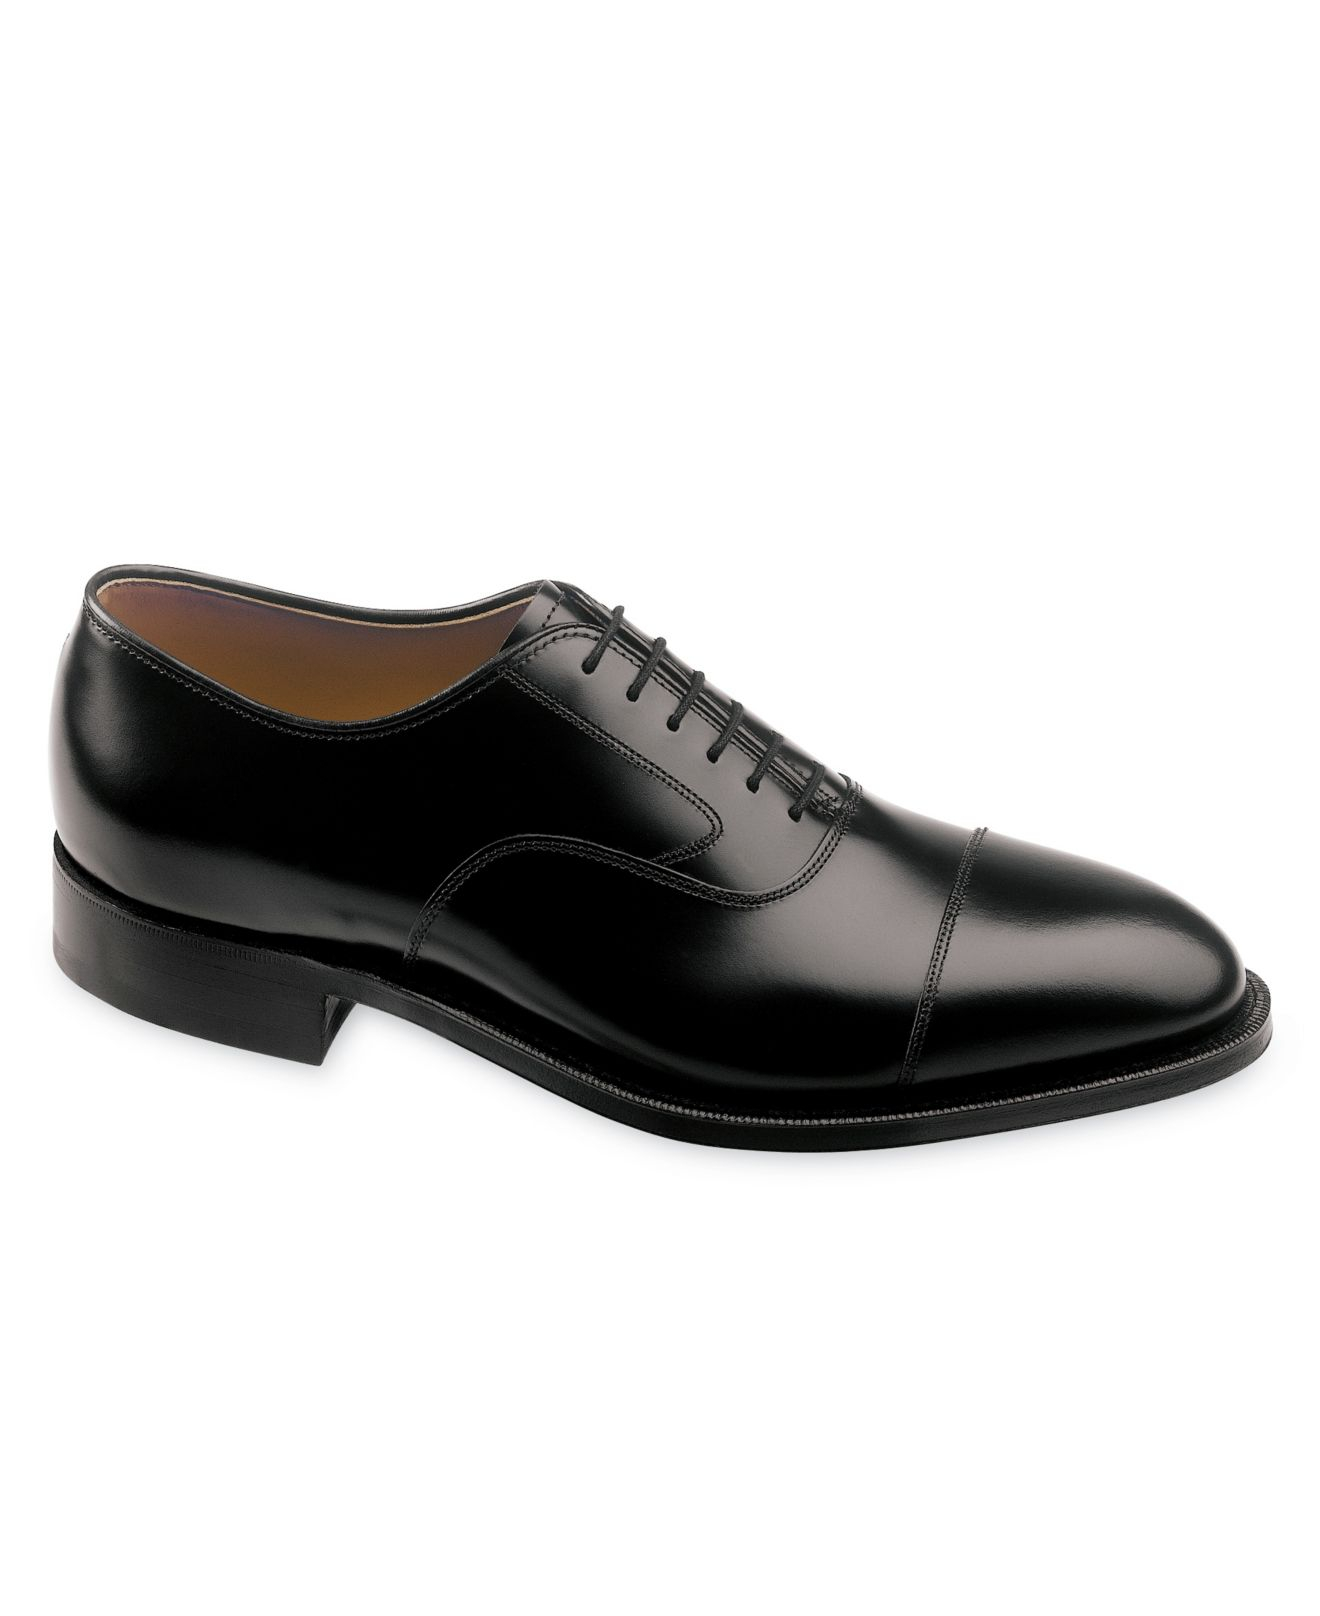 Womens Extended Widths In Shoes